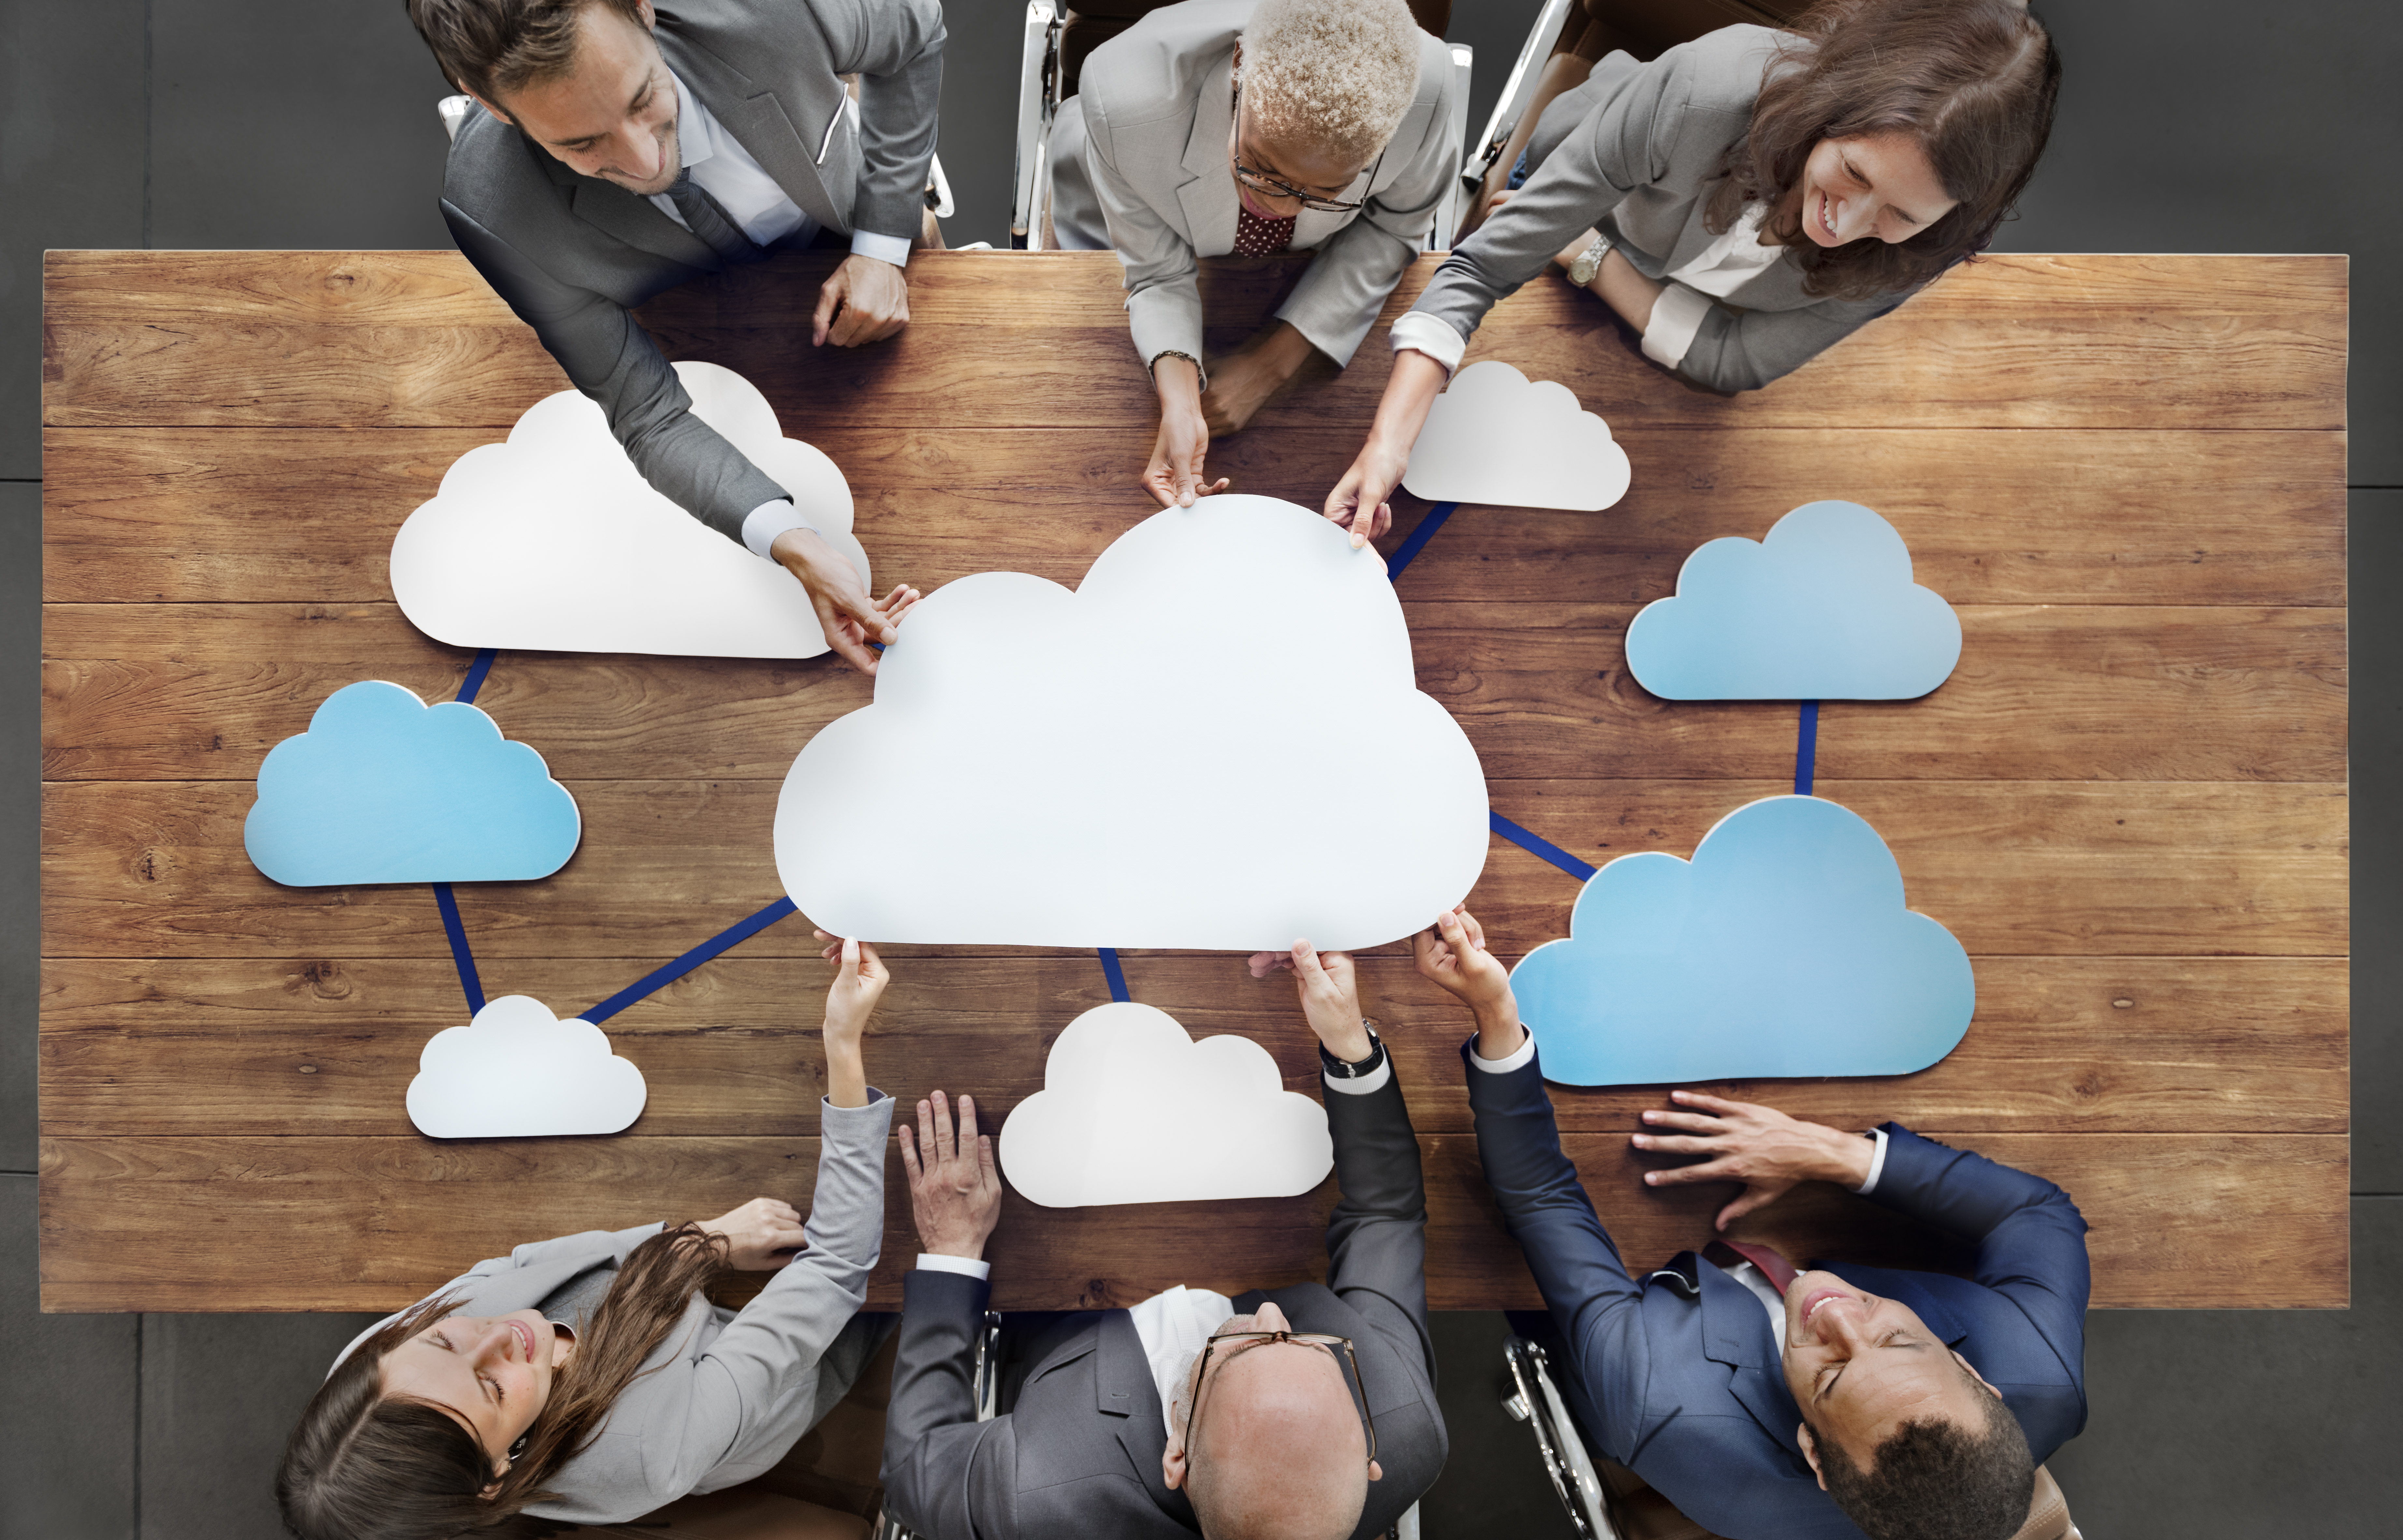 Cloud technology - how does it work?